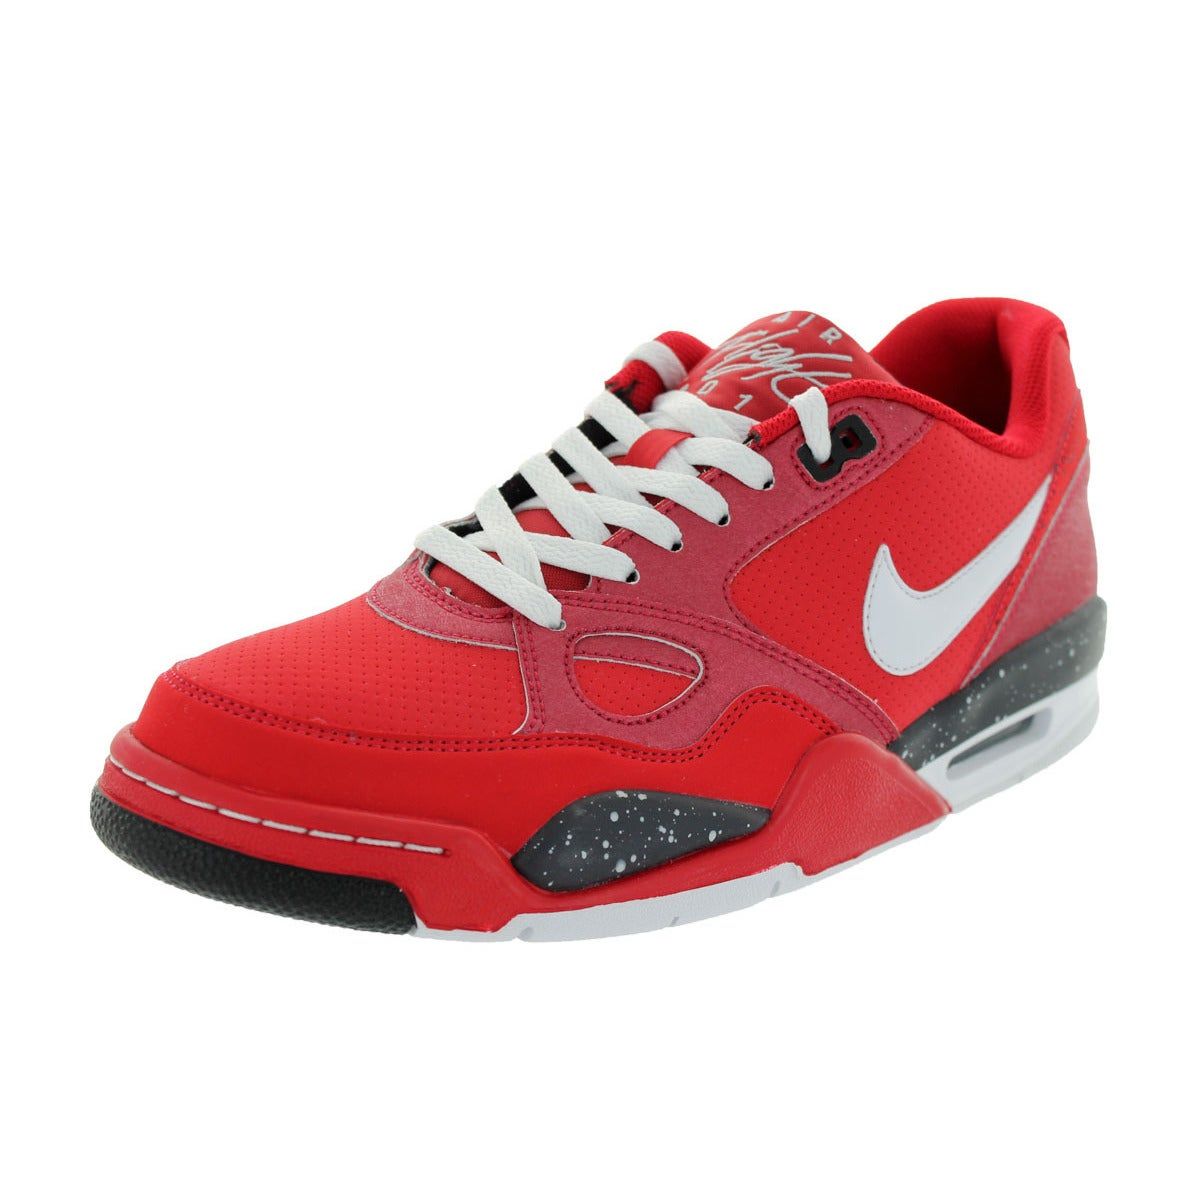 Nike Men's Flight '13 Red Basketball Shoes (8) (leather)